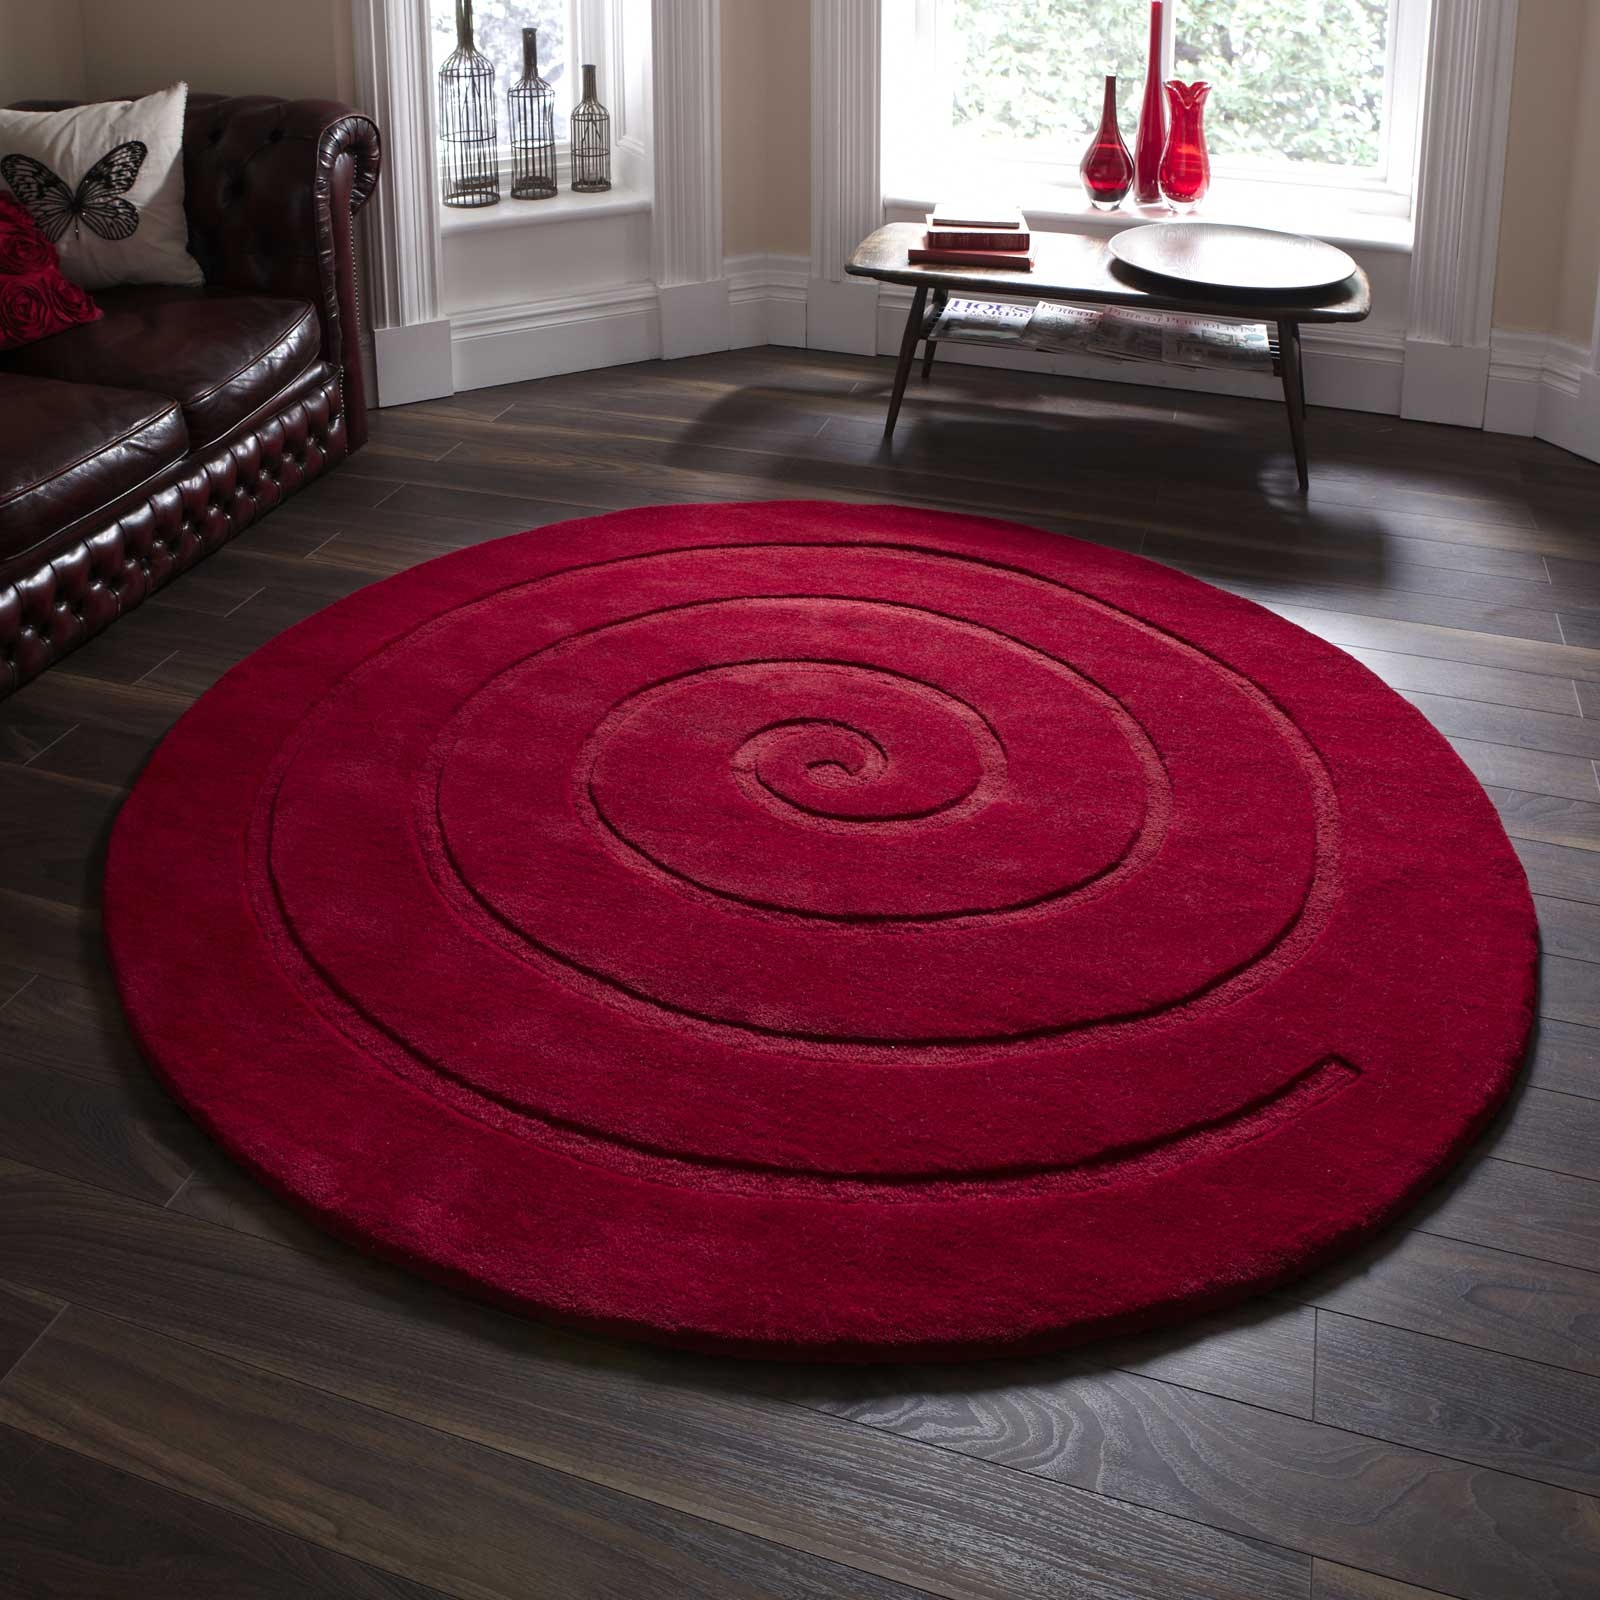 Circular Wool Rugs Roselawnlutheran With Circular Wool Rugs (Image 5 of 15)